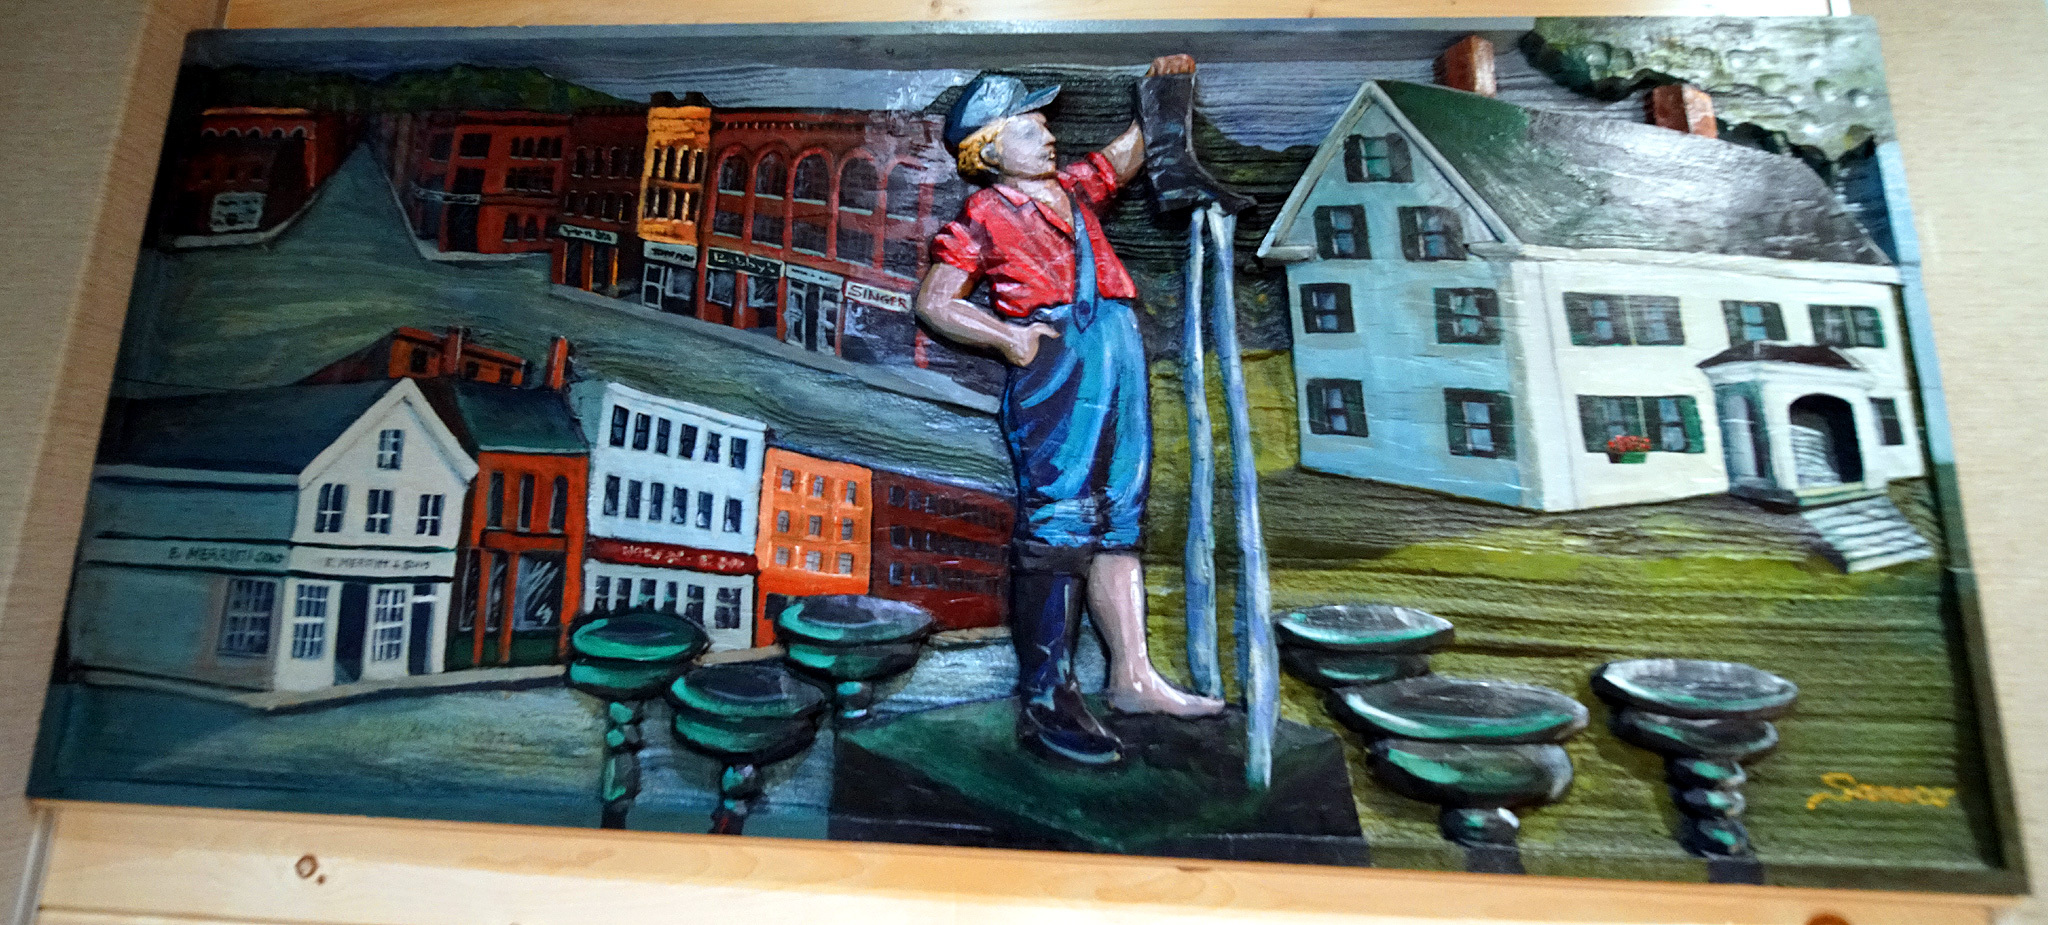 houlton me wood carving photo